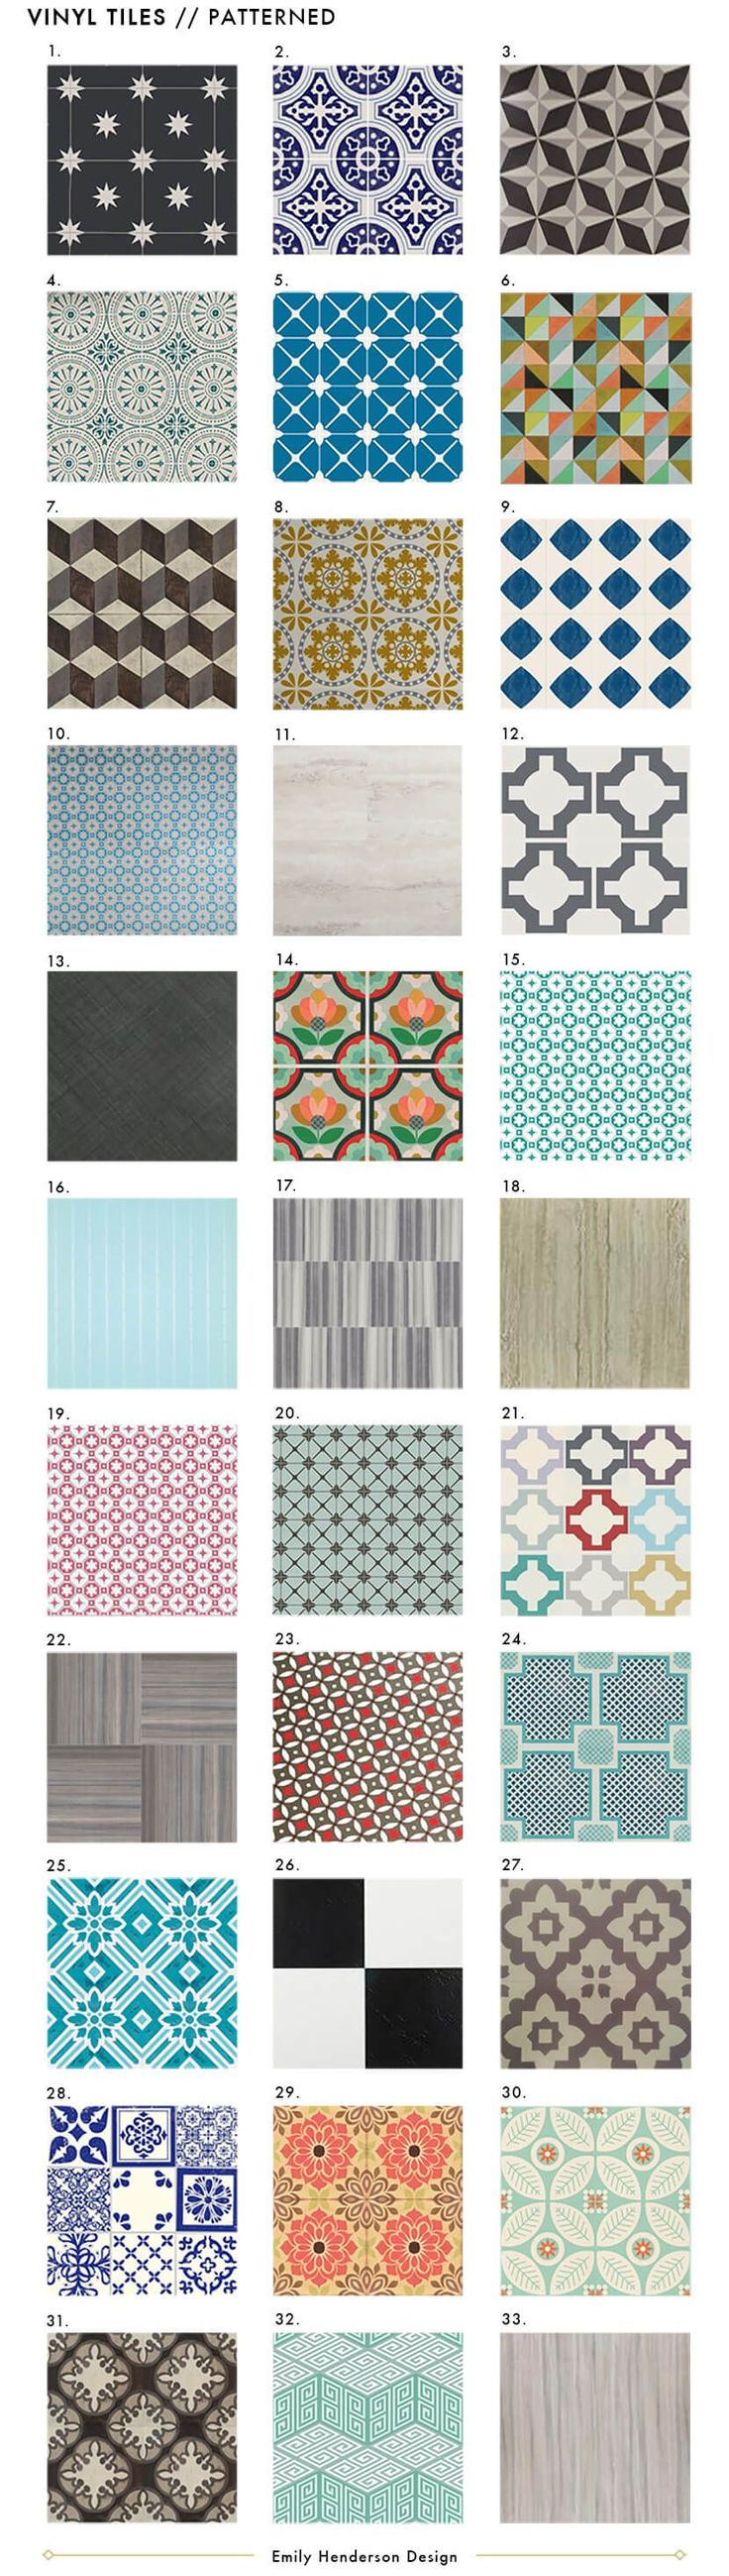 best 25+ vinyl tile backsplash ideas on pinterest | easy kitchen